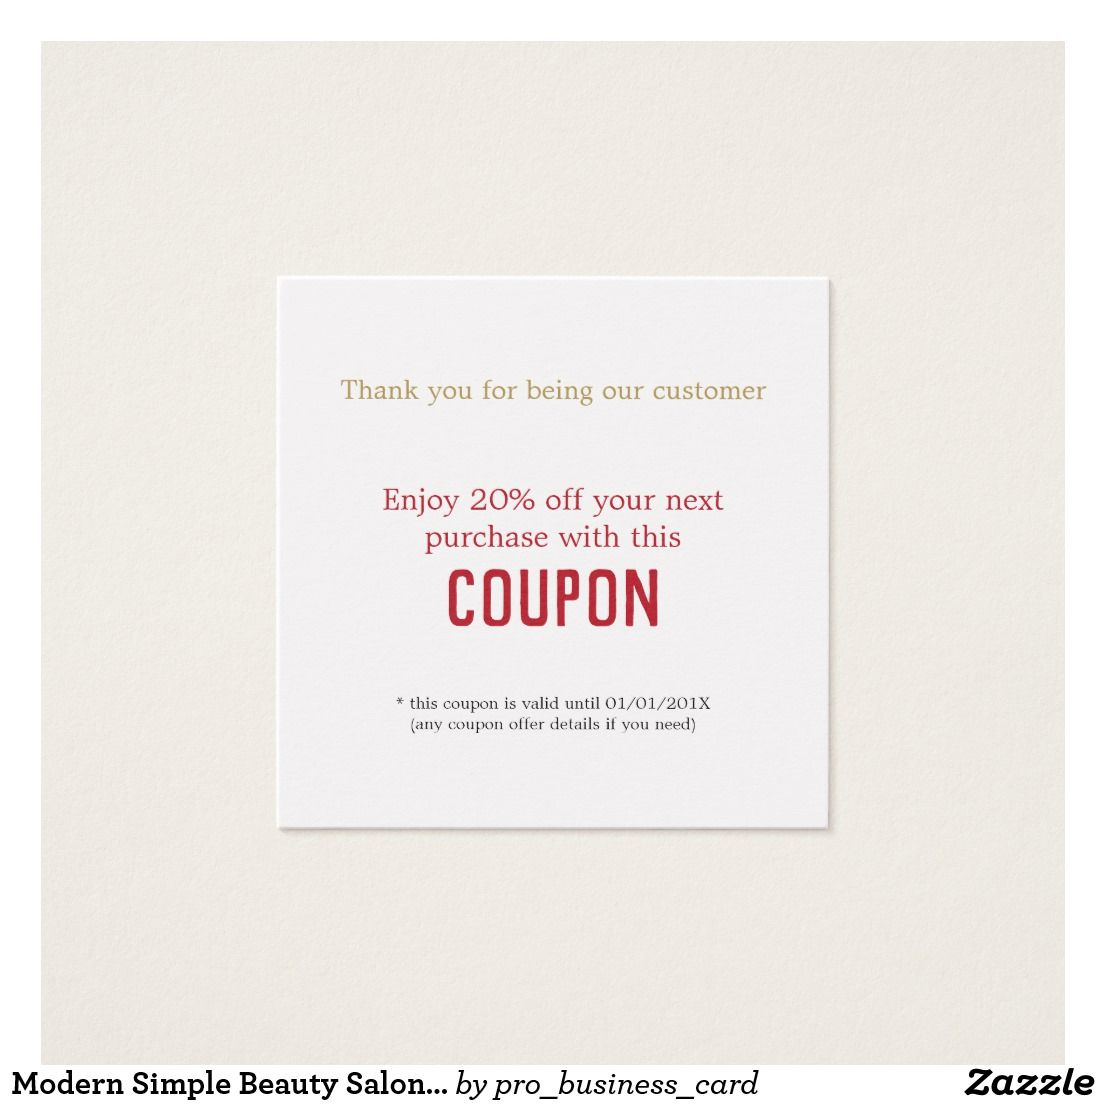 Modern Simple Beauty Salon Thank You Coupon Square Business Card ...